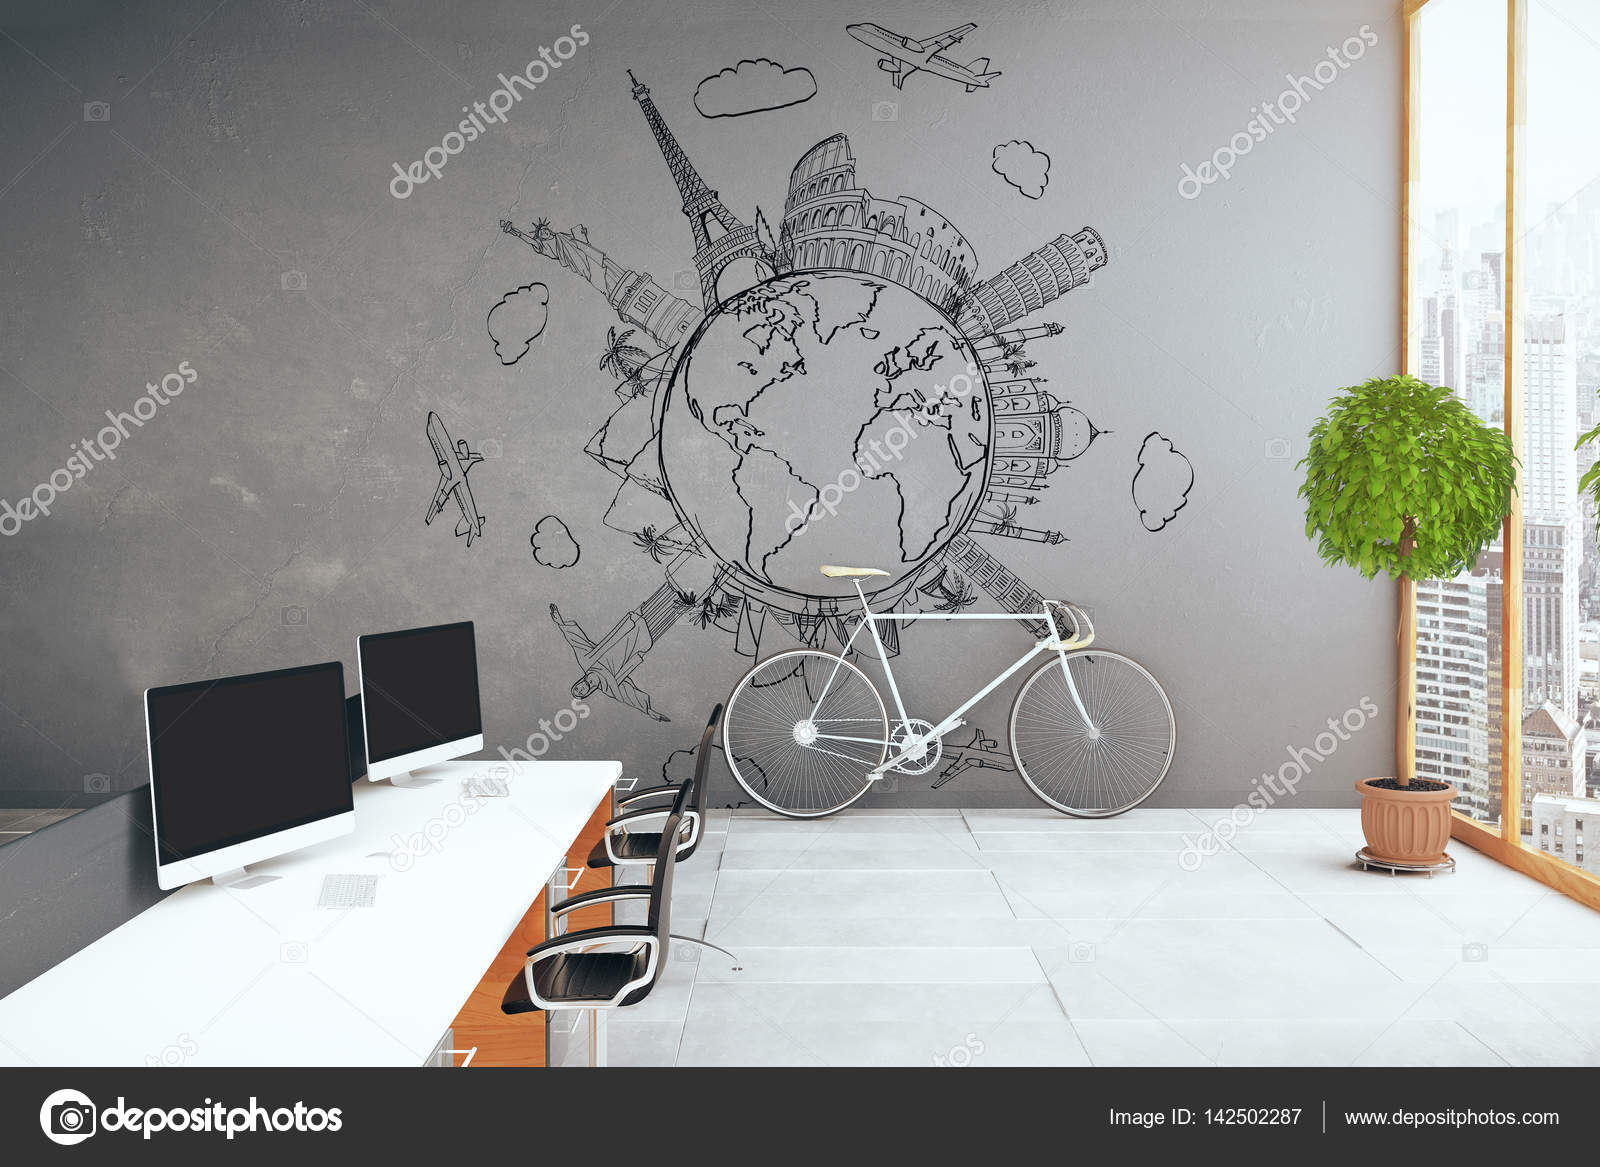 Side view of creative modern office with equipment, traveling sketch on concrete wall, bike, city view and decorative plant. Travel agency concept.